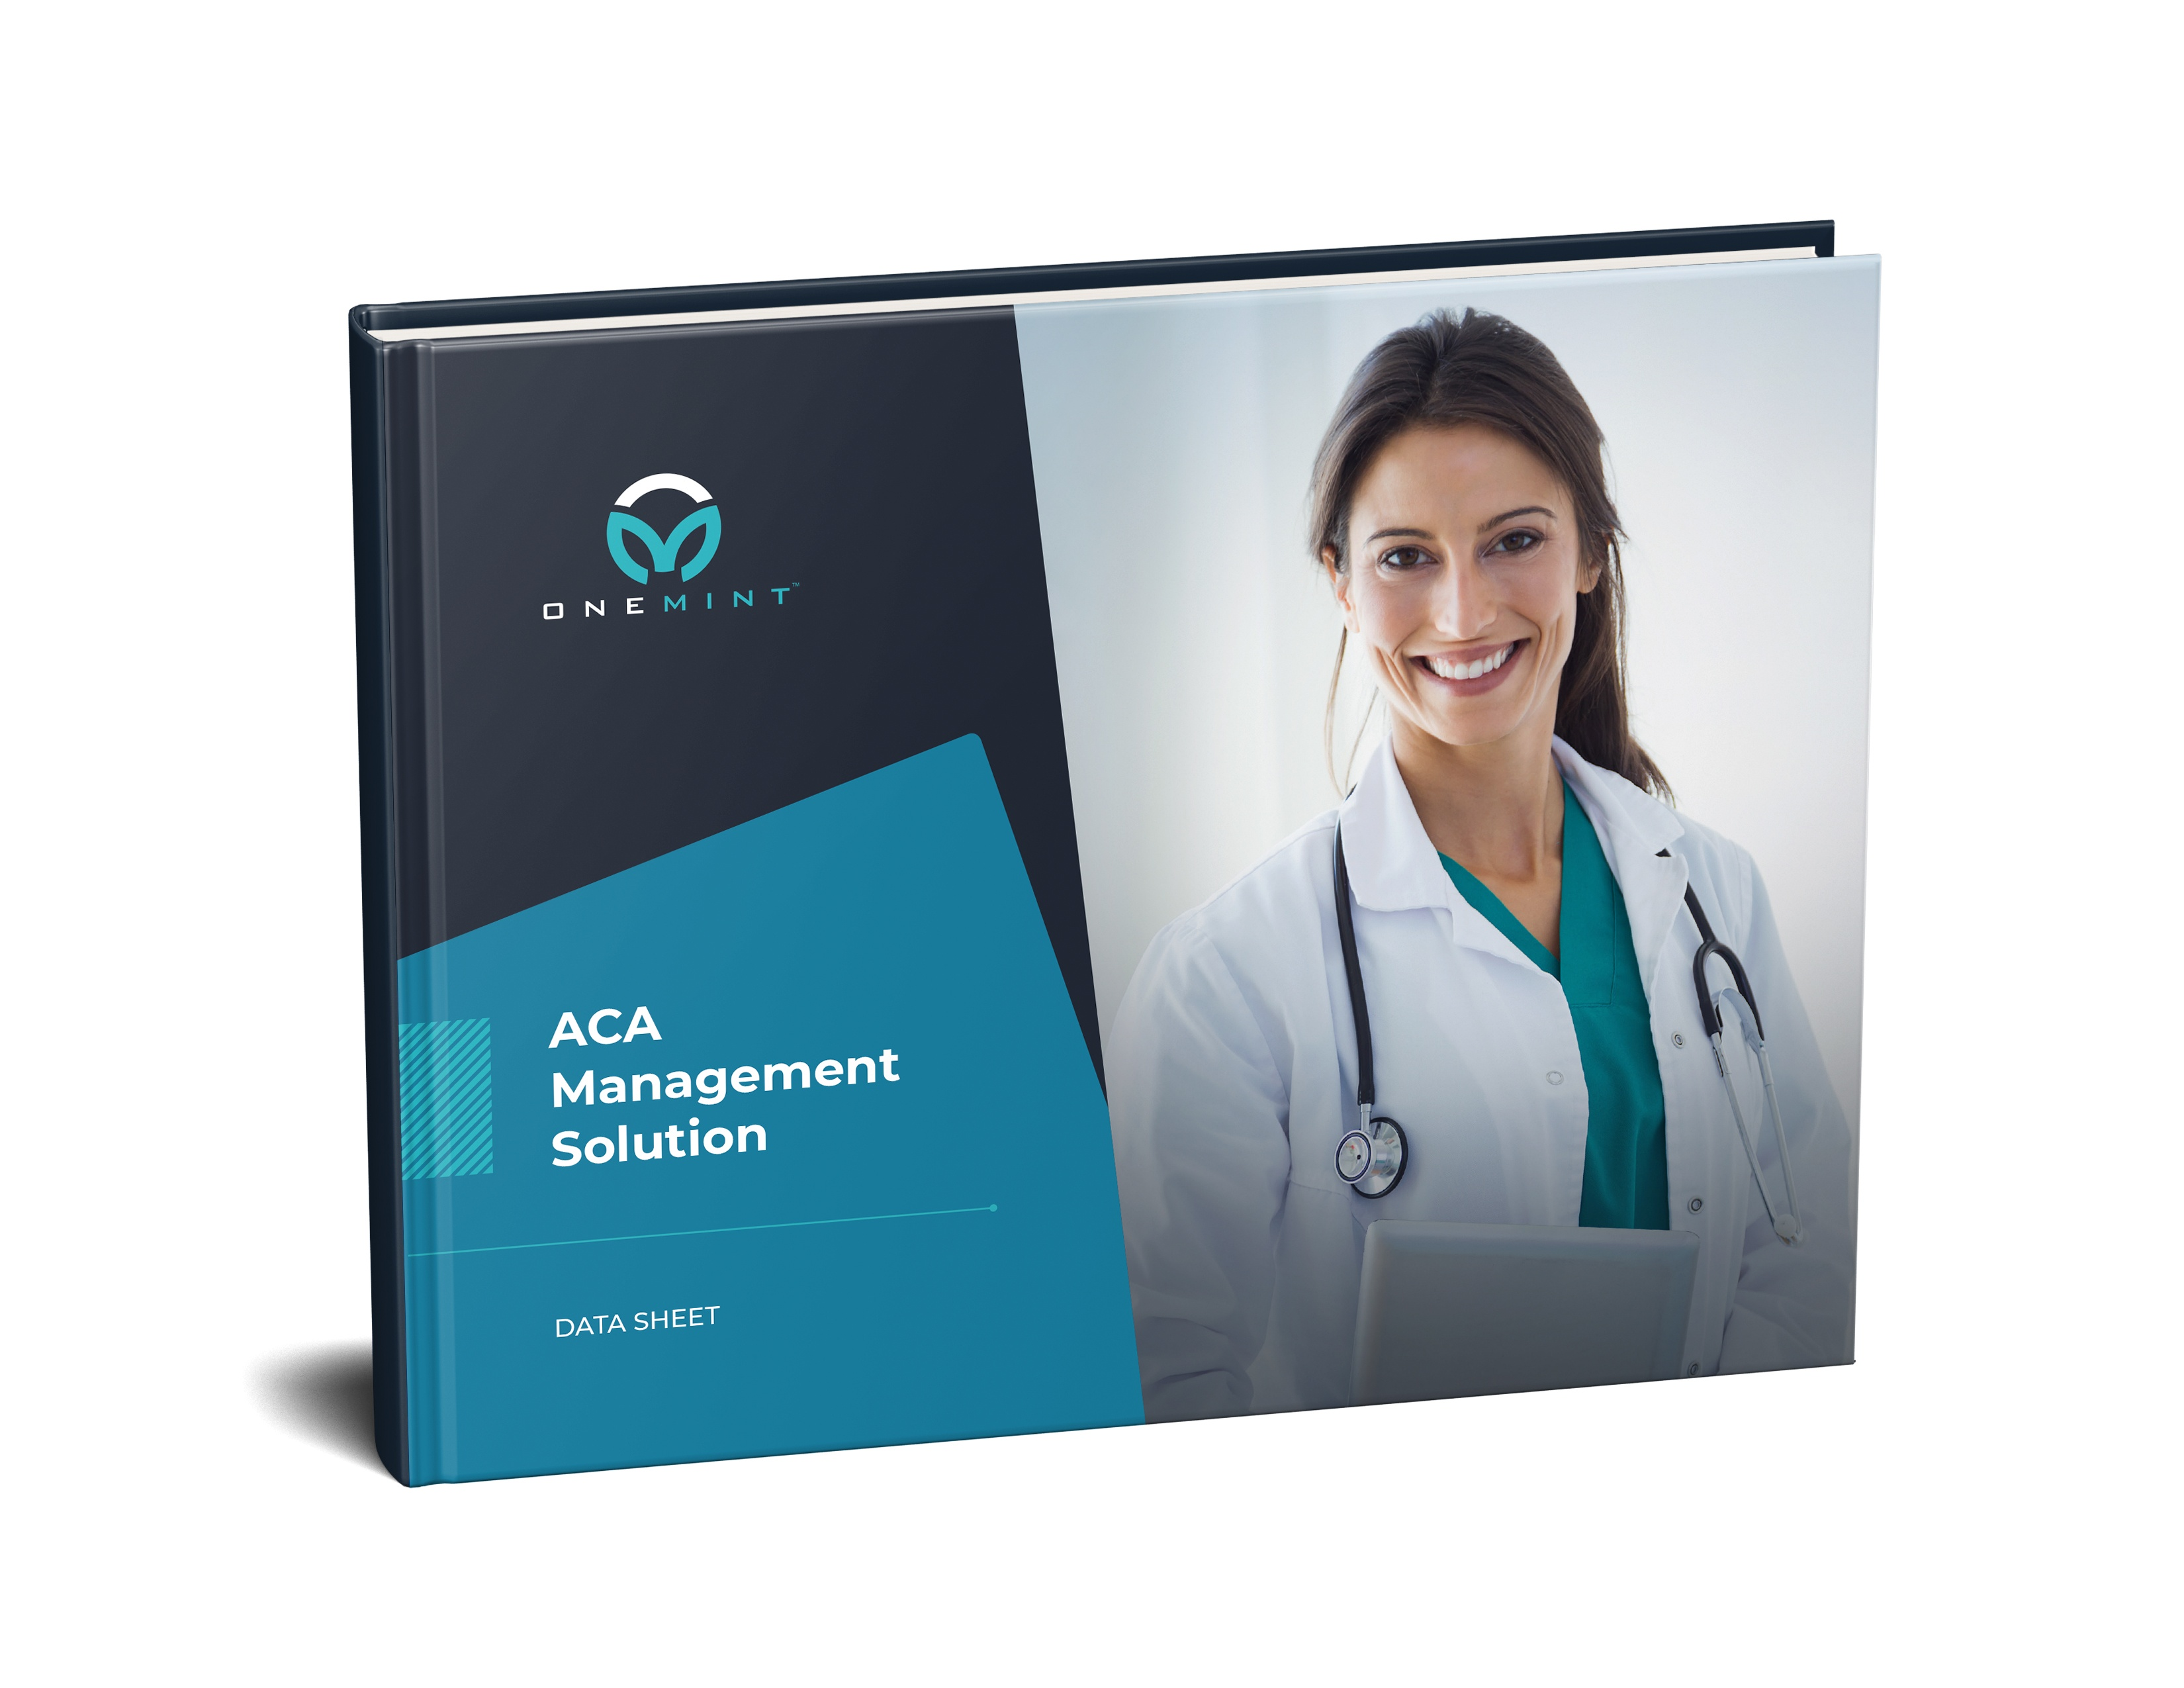 ONEMINT ACA Solution